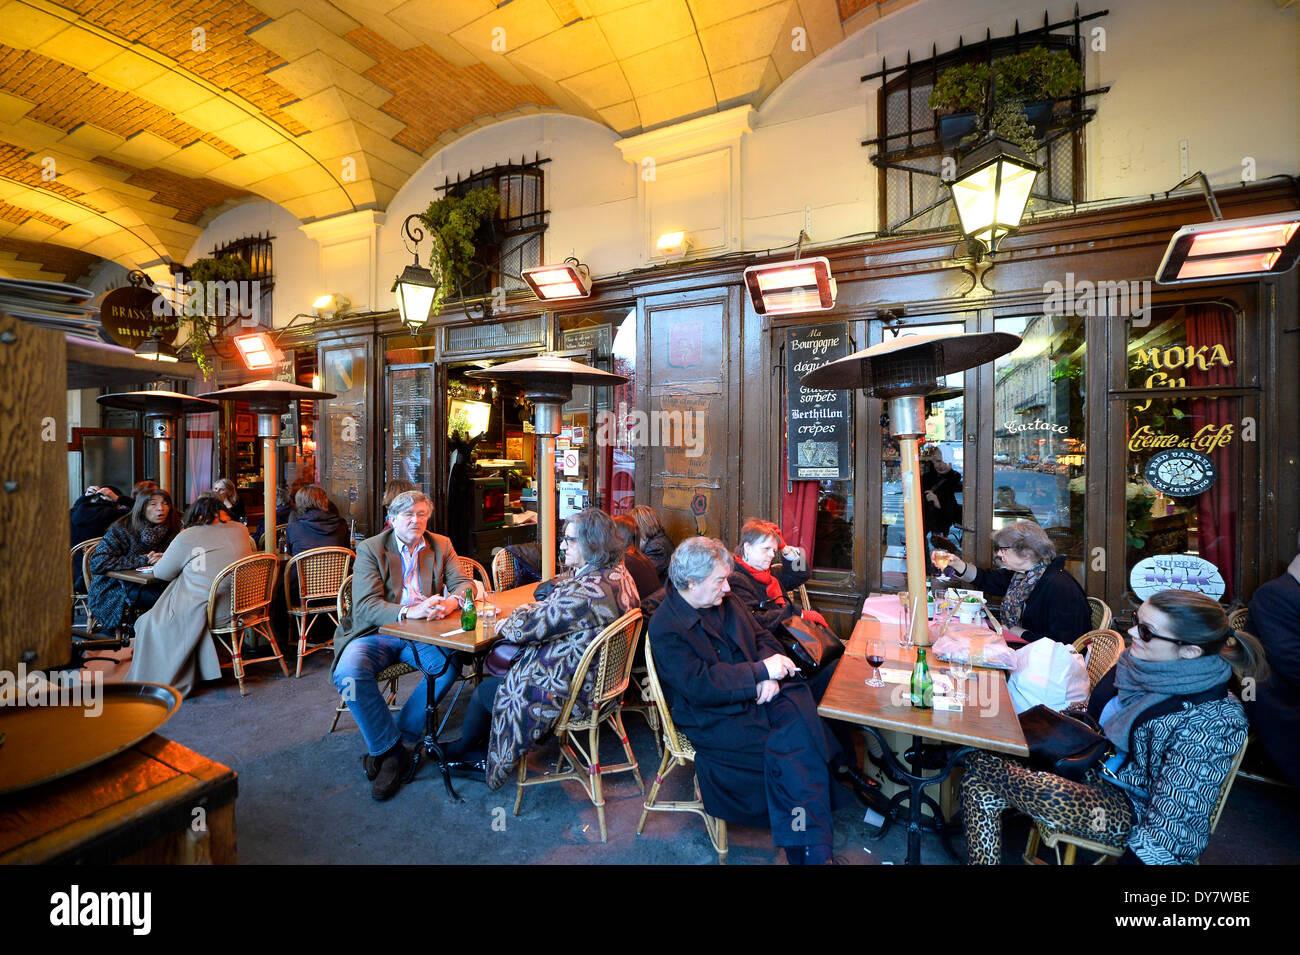 brasserie mutzig restaurant and street caf place des vosges stock photo 68400402 alamy. Black Bedroom Furniture Sets. Home Design Ideas